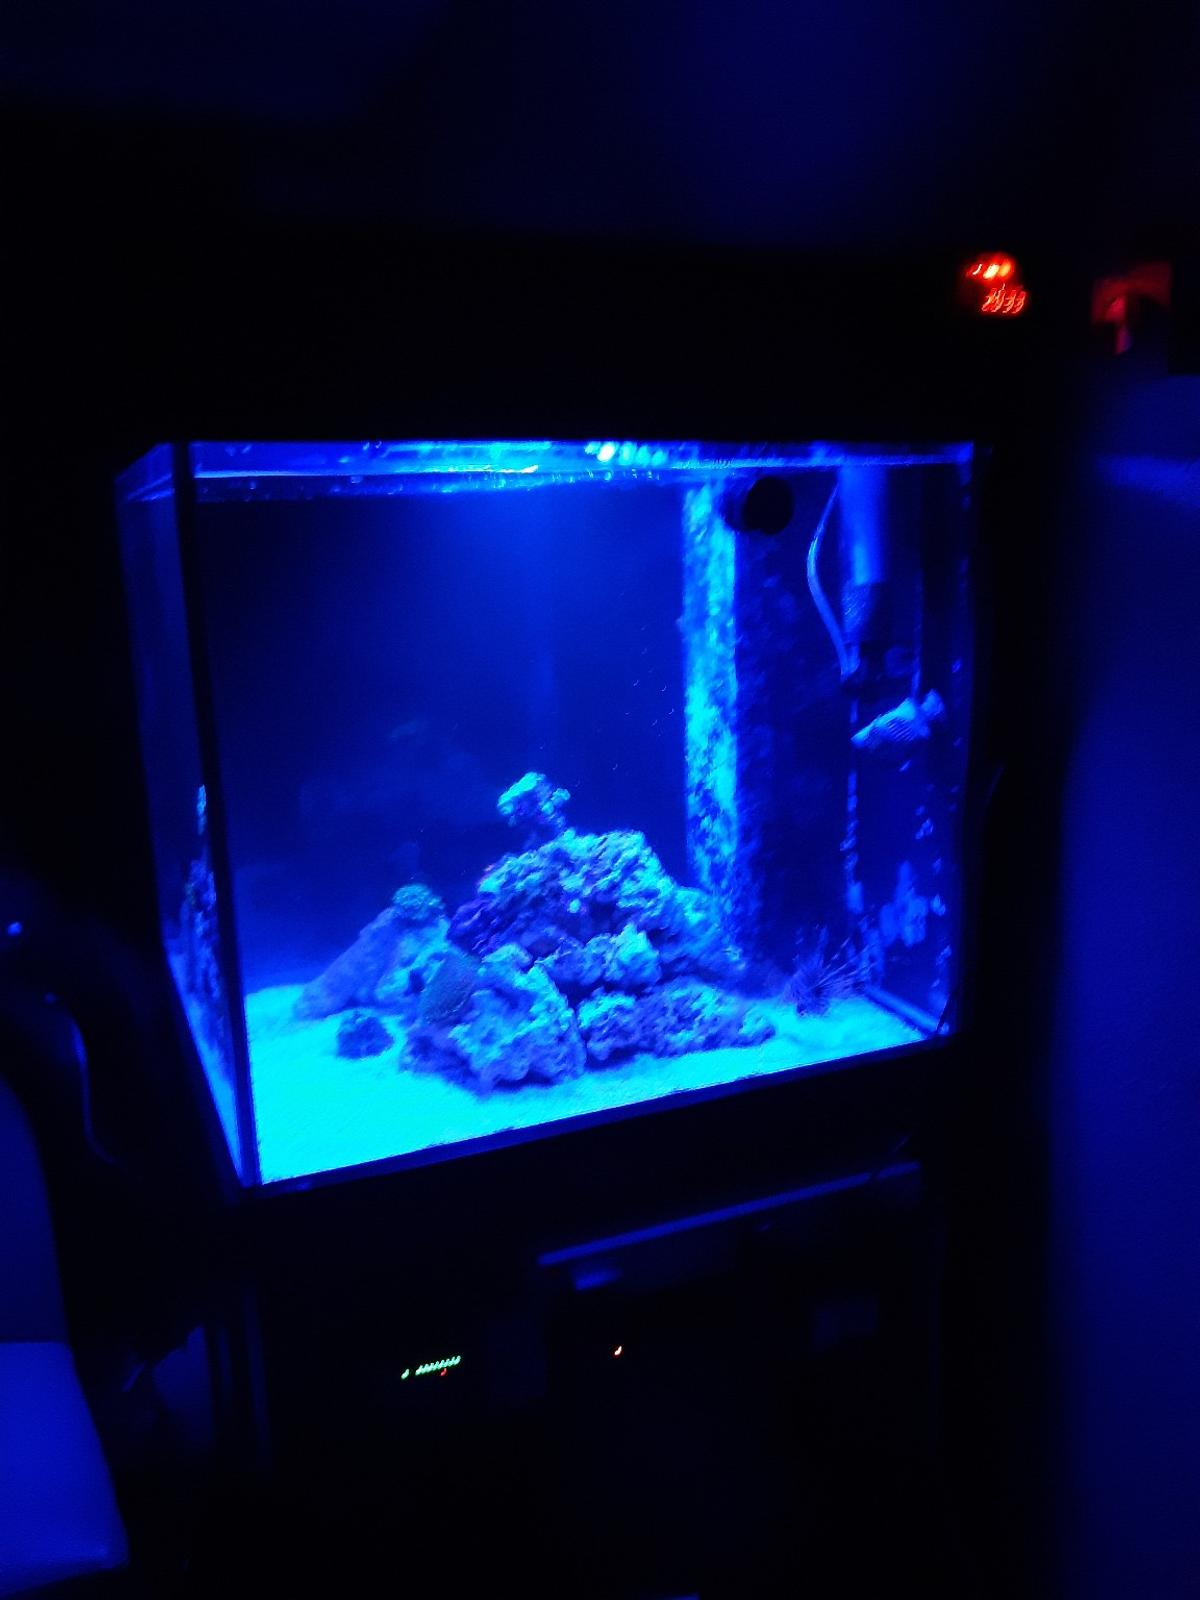 I'm selling complete marine set up due to moving their is a few live corals as well as a lion fish who has a great personality the tank has a sump as well with skimmer and heater with return pump grab a bargain and make me an offer many thanks